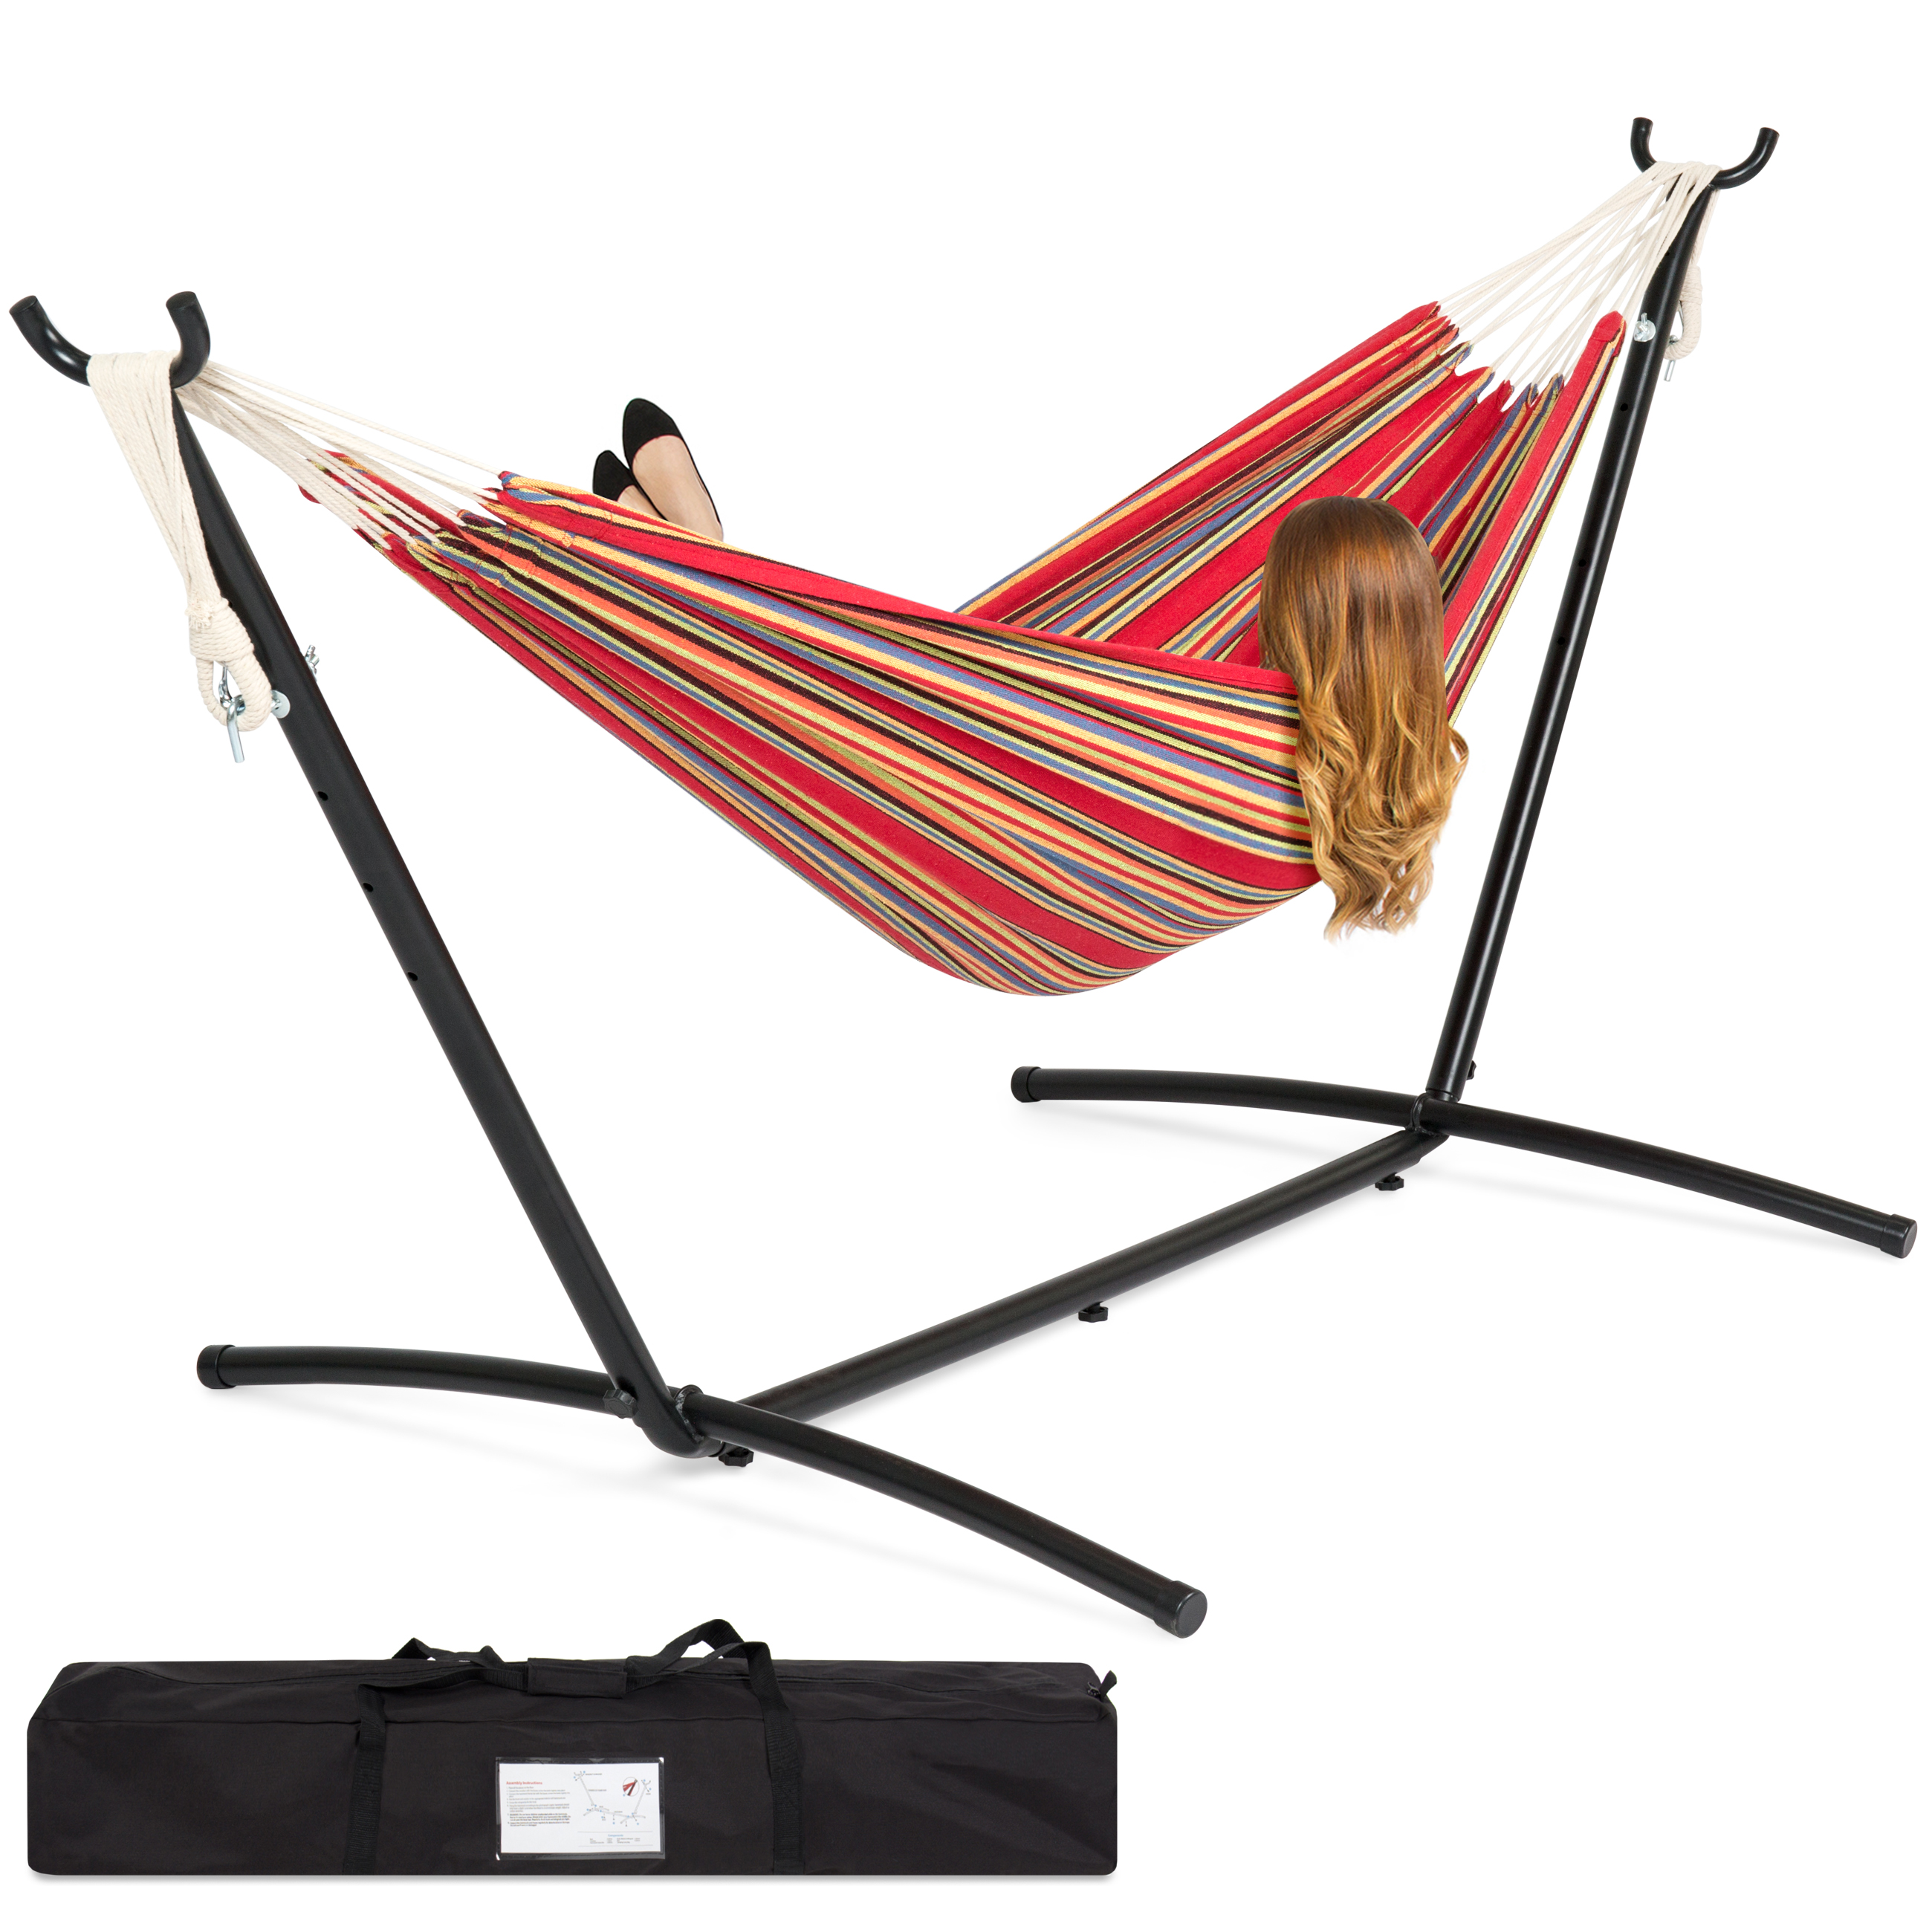 Best Choice Products Double Hammock Set w/ Steel Stand, Carrying Case for Indoor and Outdoor